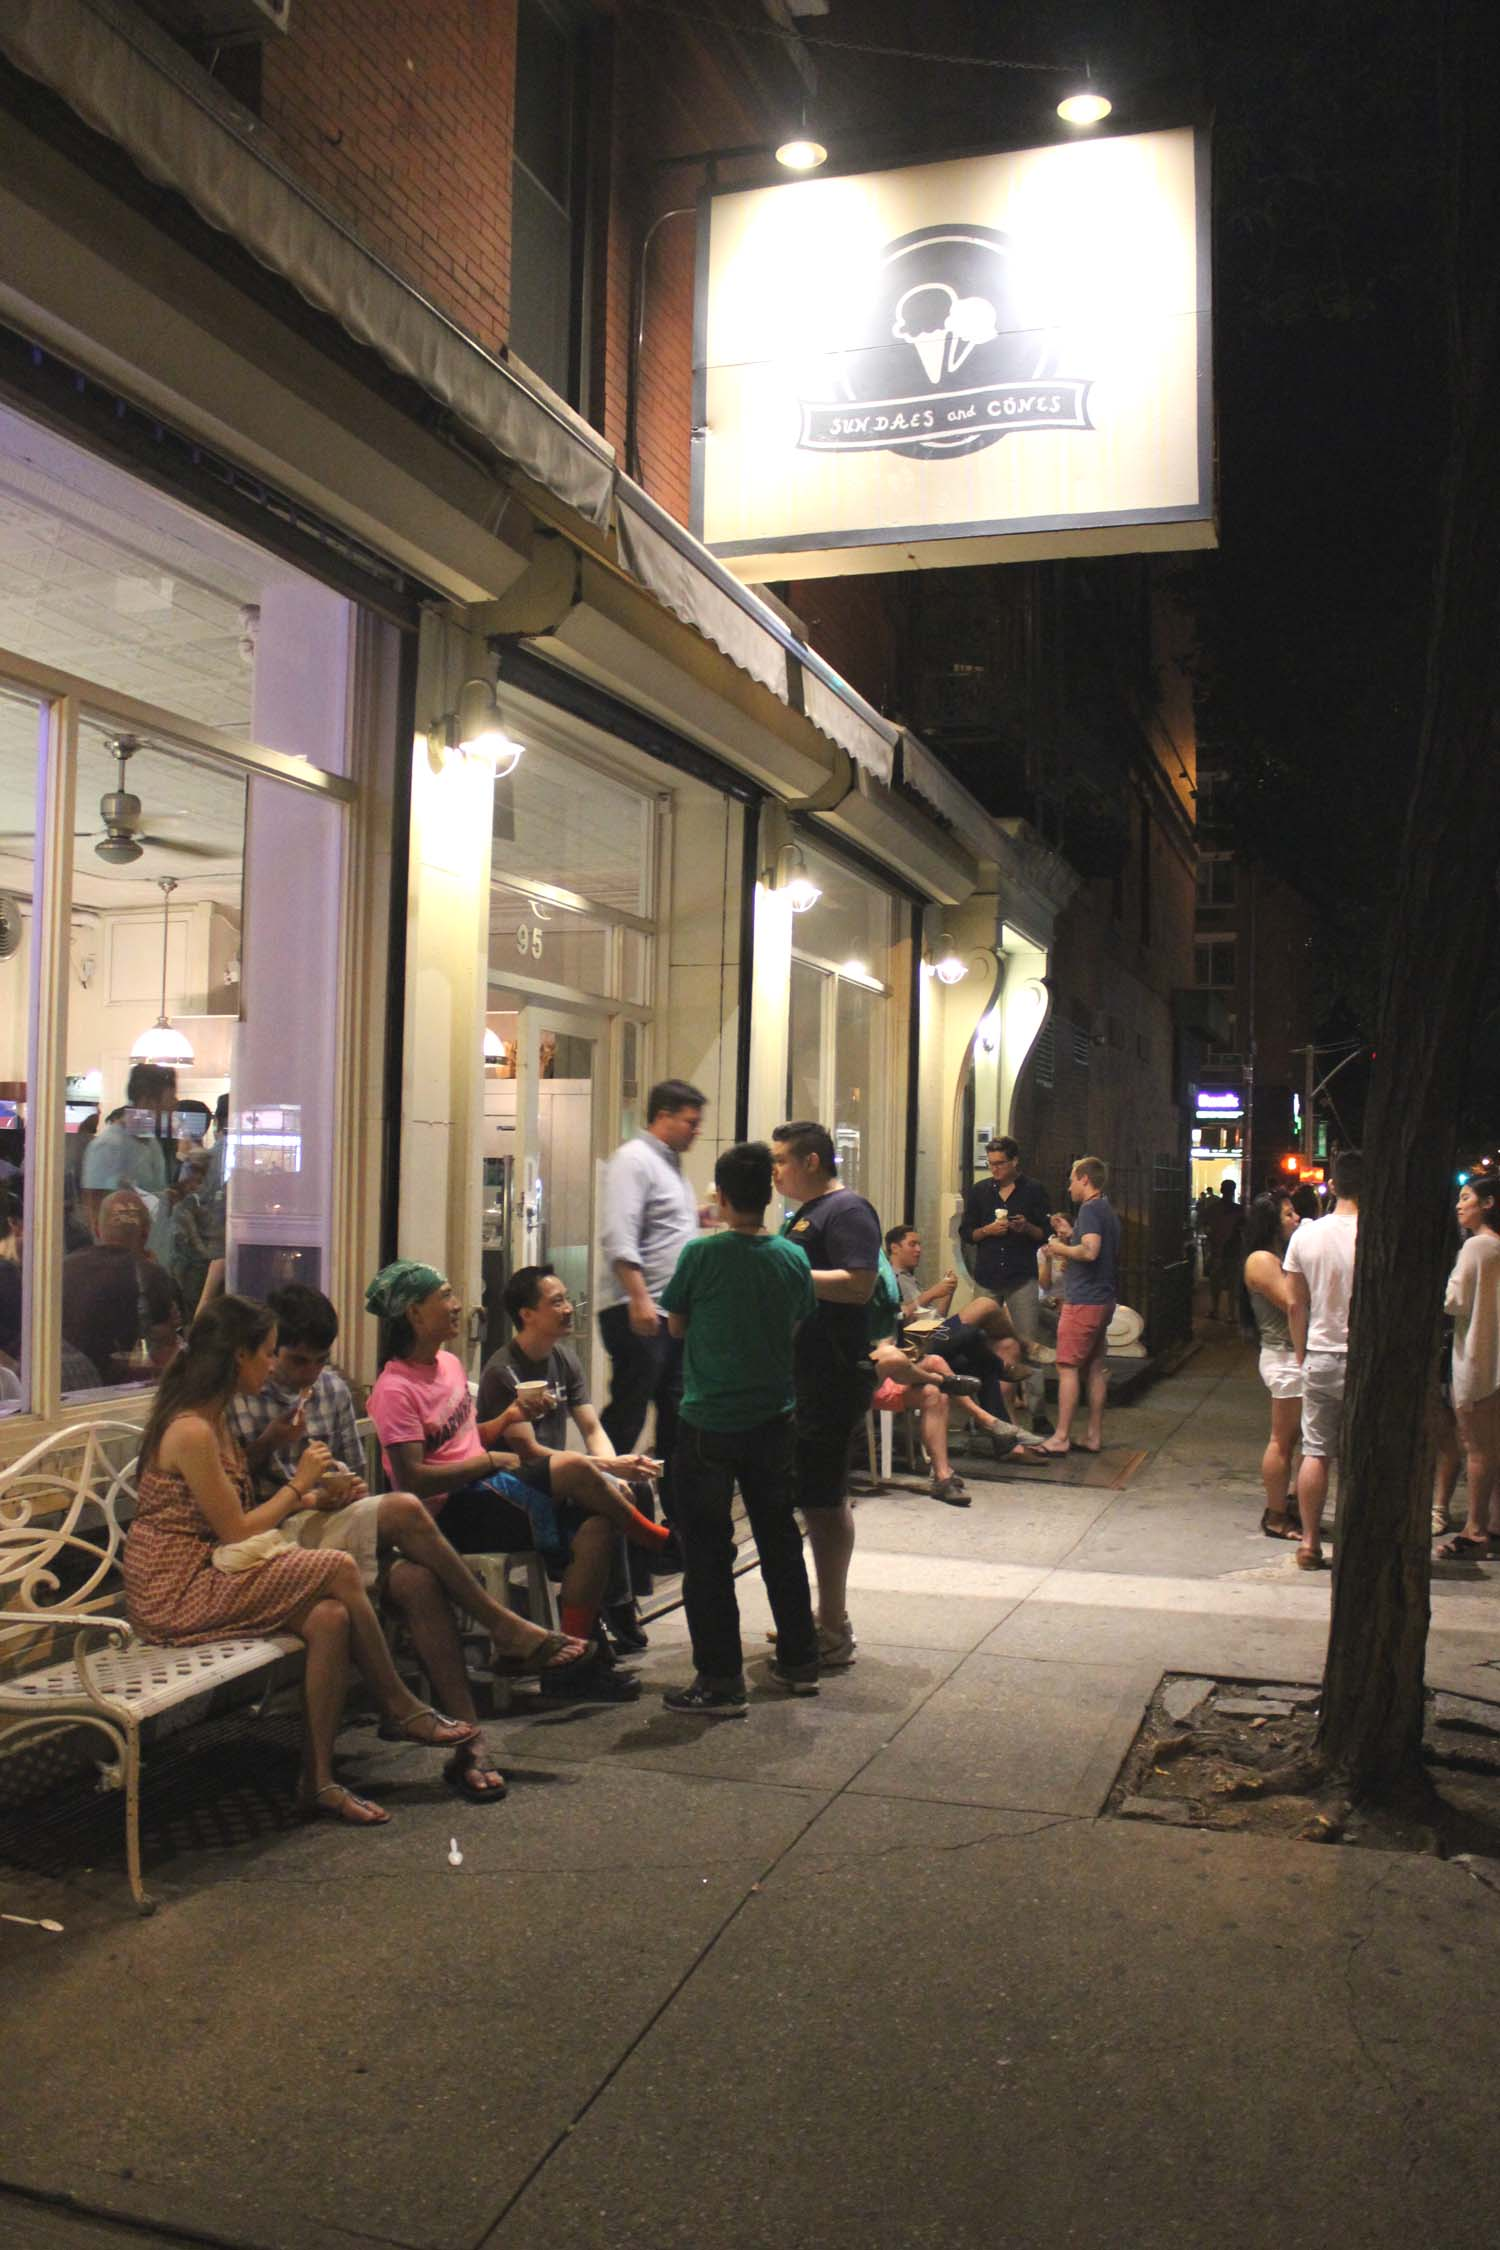 Sundaes and Cones in East Village   | Image:   Laura Messersmith